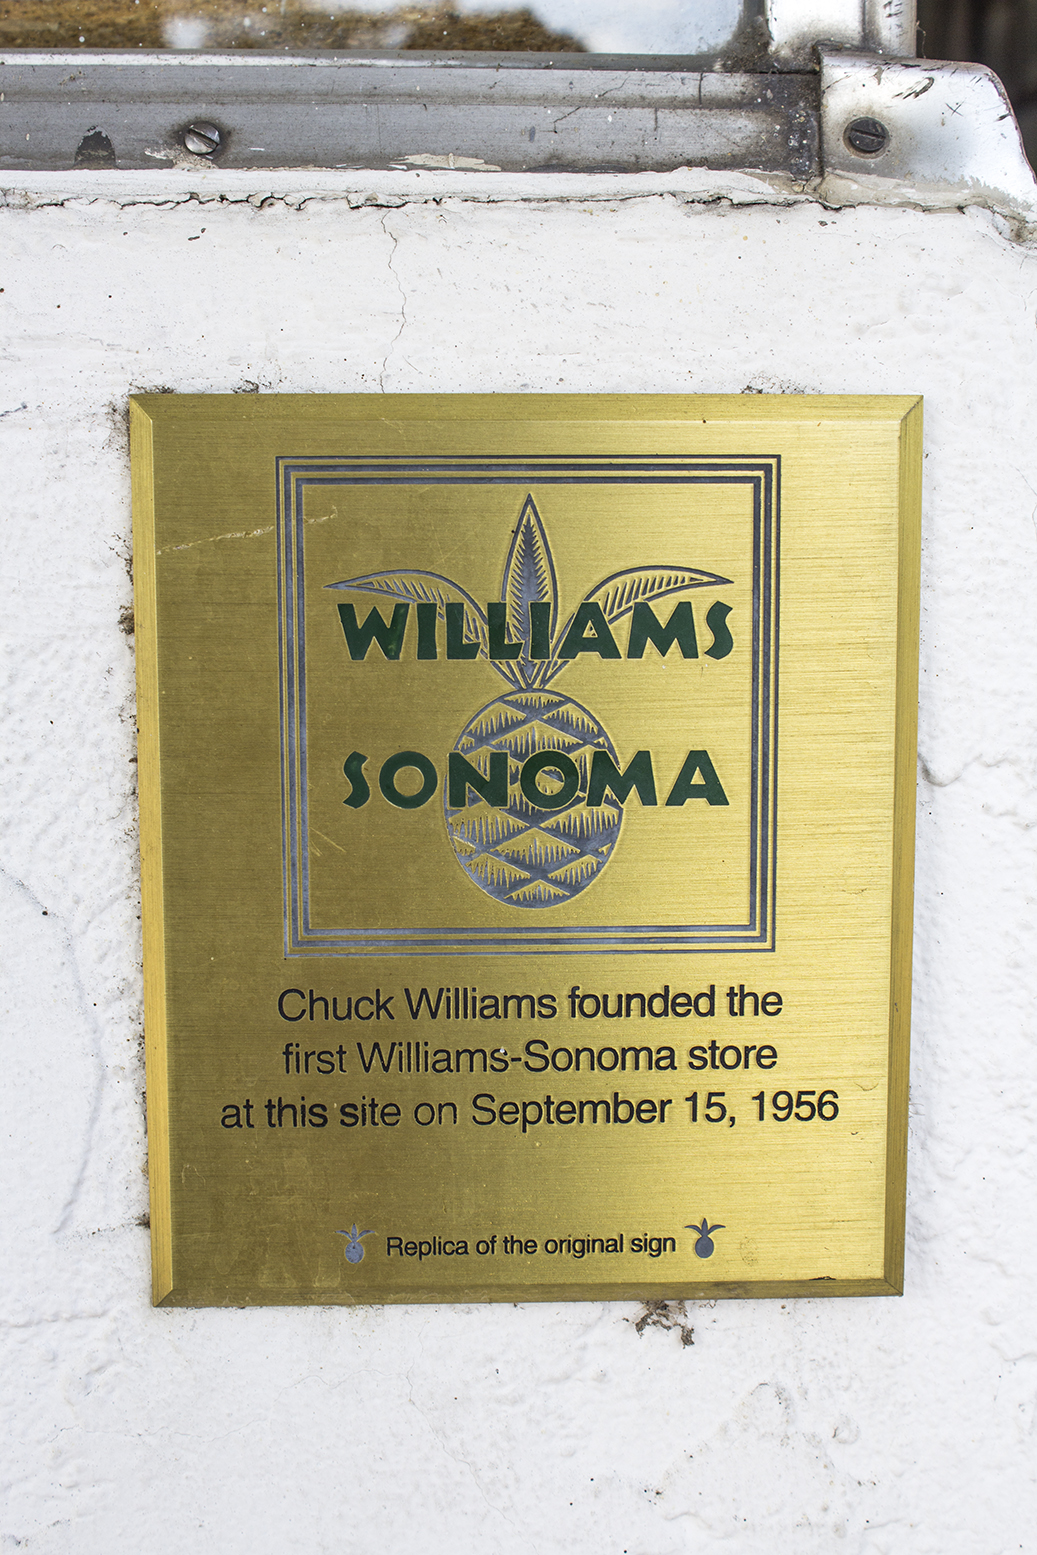 The location of the first Williams-Sonoma store. 601 Broadway, Sonoma.